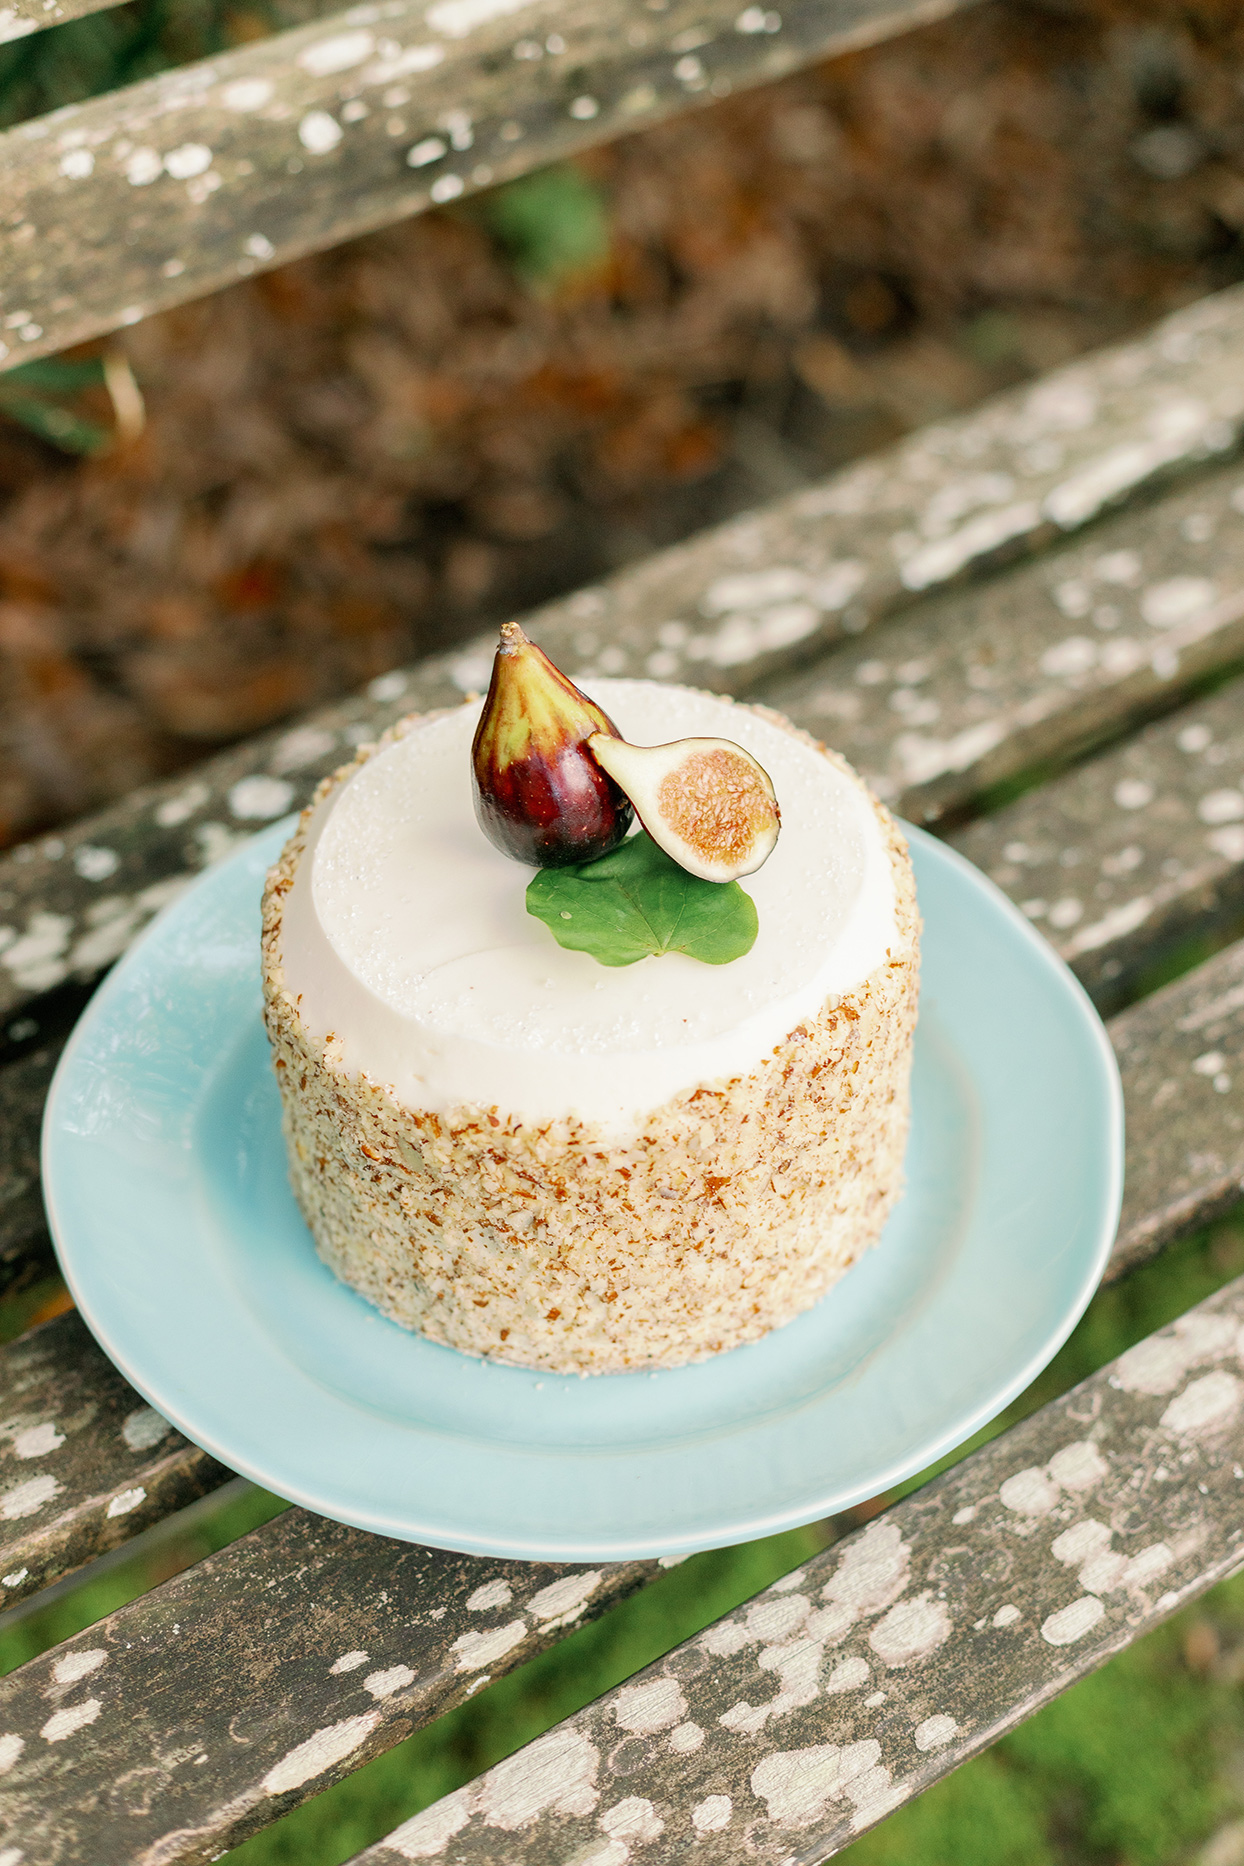 fig topped single layer round wedding cake on blue plate